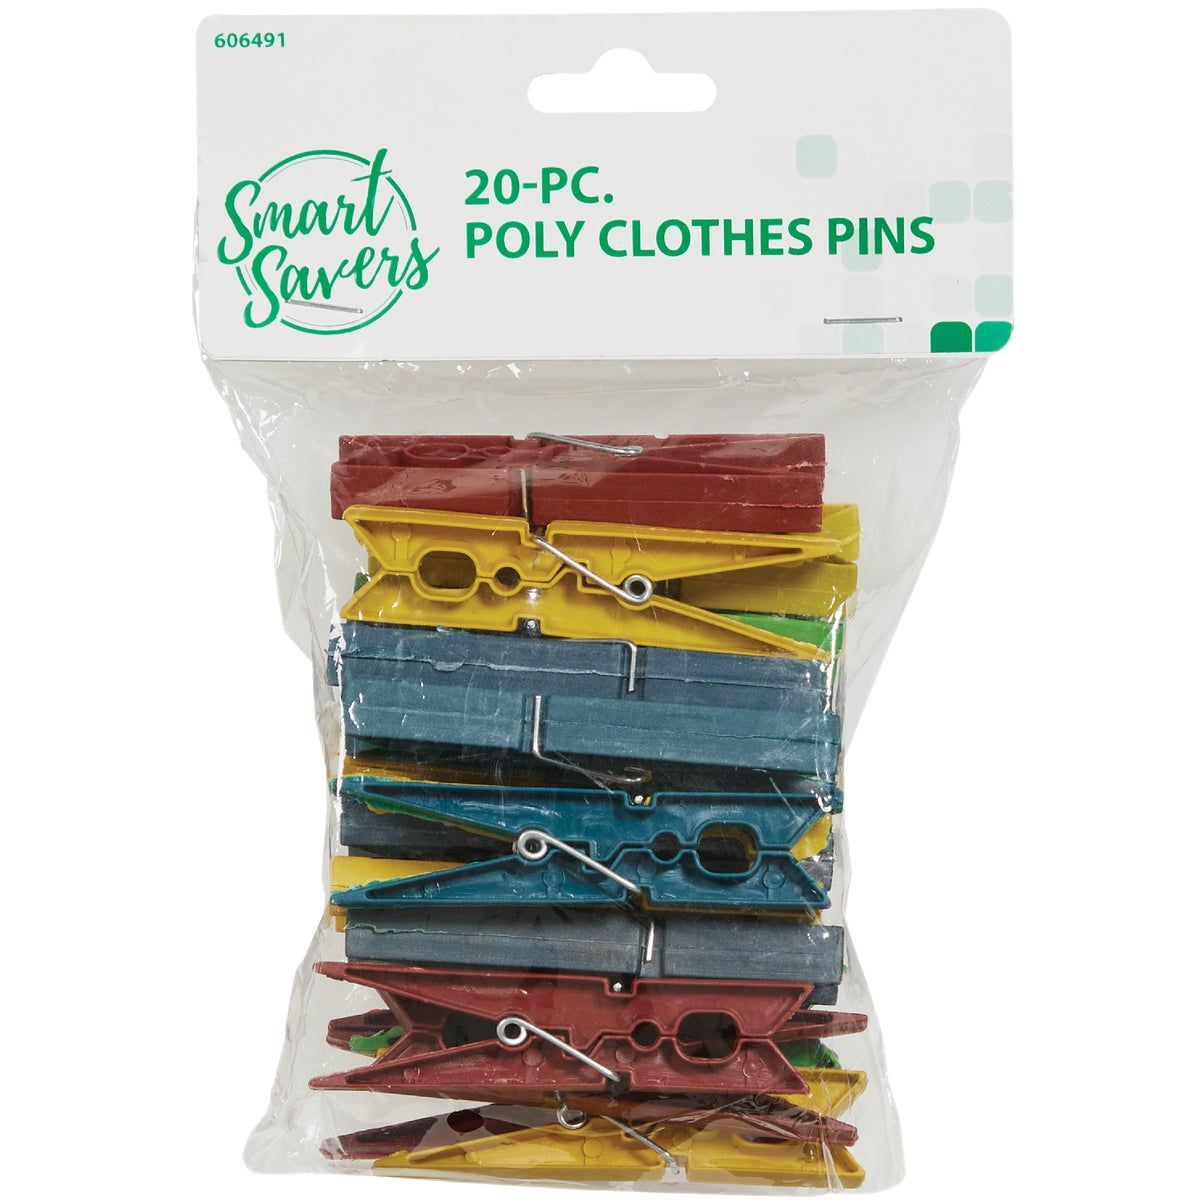 20PC POLY CLOTHES PINS